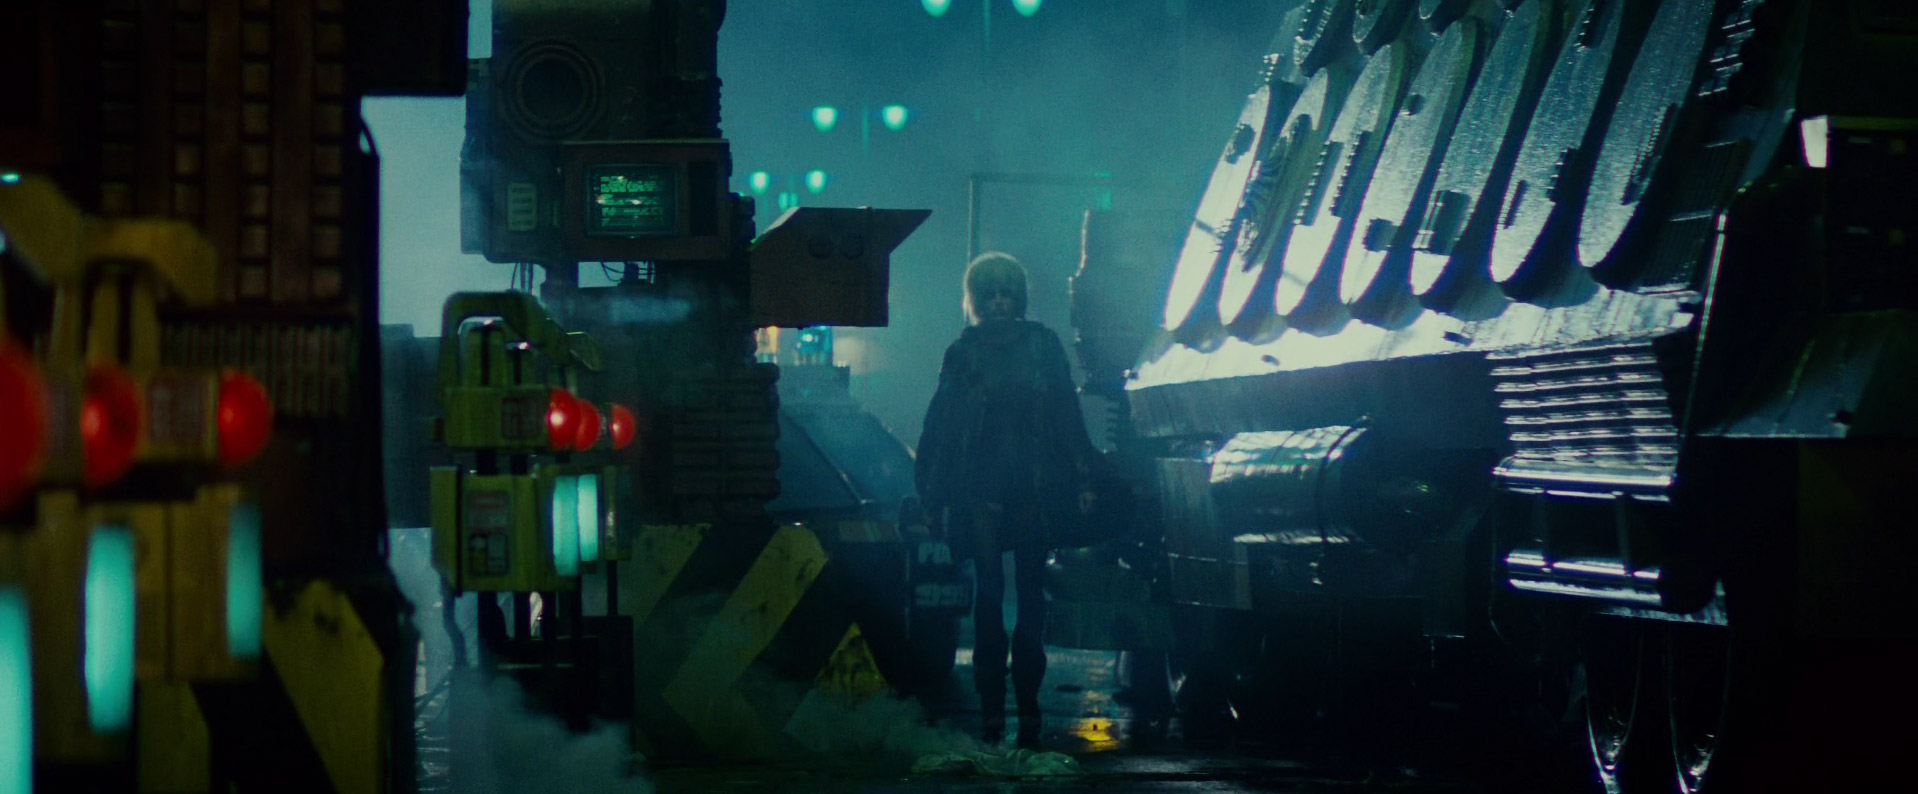 manipulation in blade runner and maus essay Essays - largest database of quality sample essays and research papers on frankenstein and bladerunner.